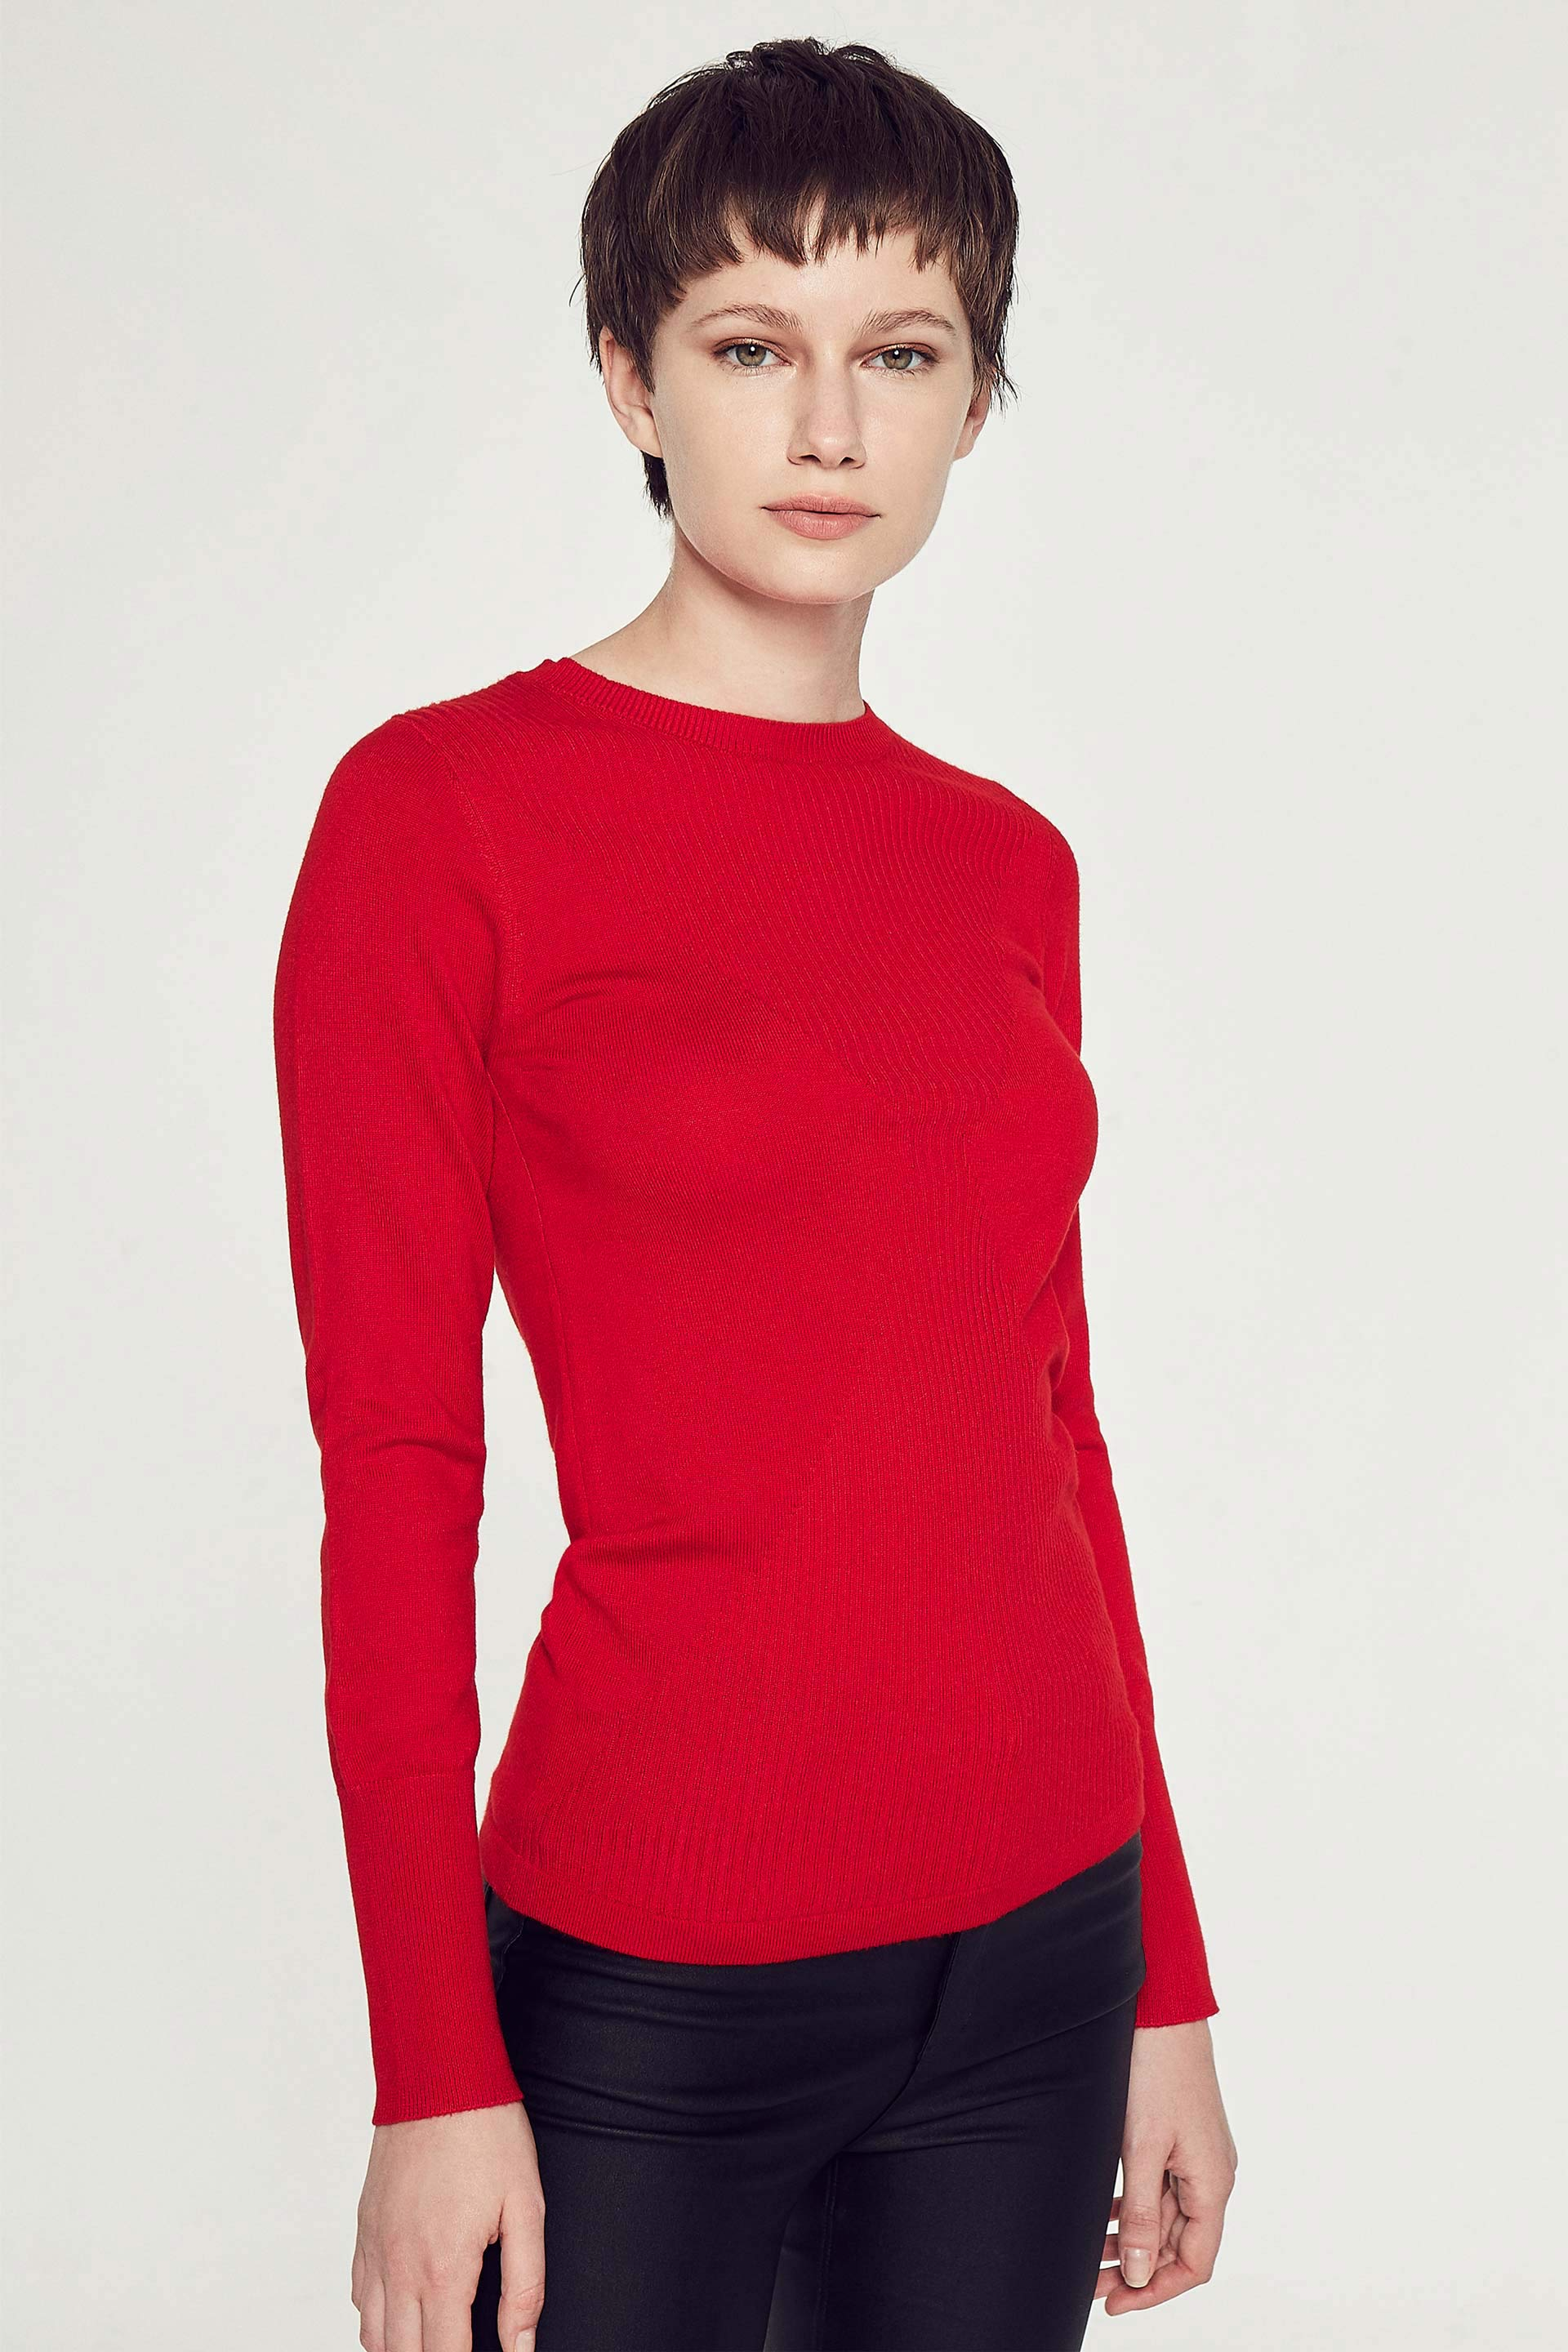 markova_sweater-muster_53-24-2020__picture-30154